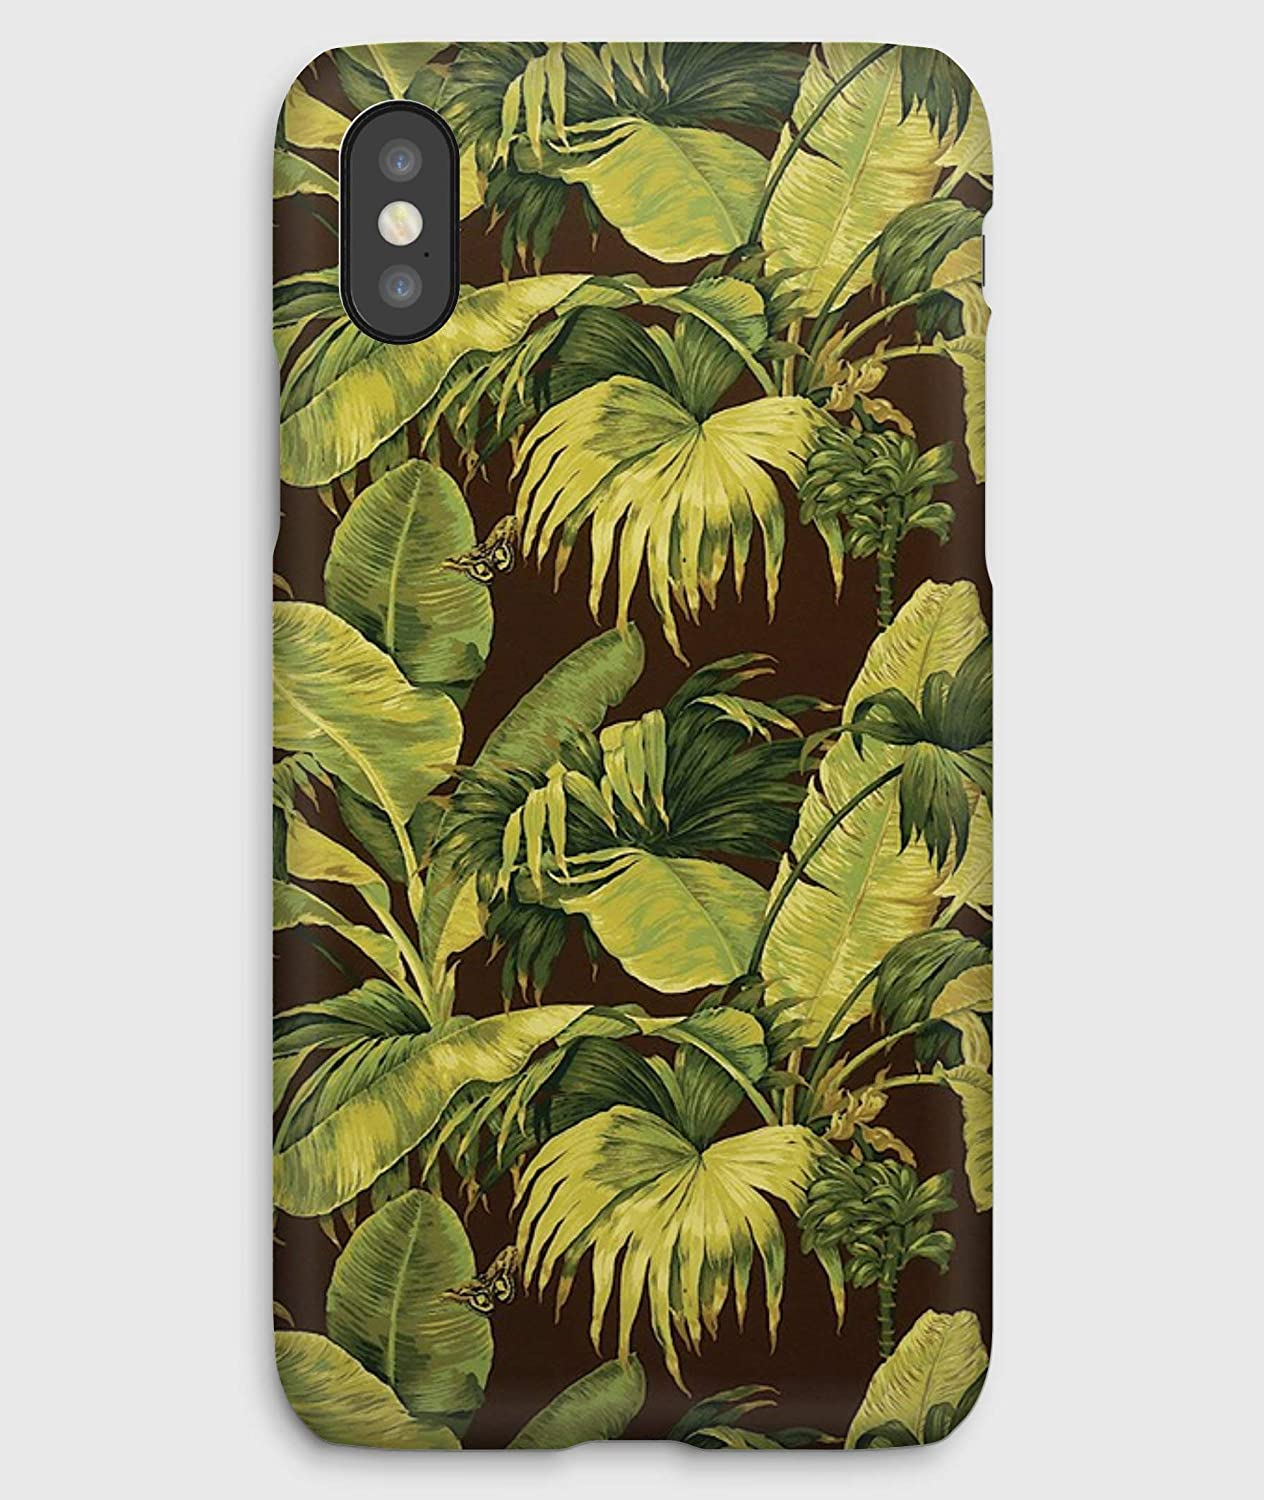 Banana, coque pour iPhone XS, XS Max, XR, X, 8, 8+, 7, 7+, 6S, 6, 6S+, 6+, 5C, 5, 5S, 5SE, 4S, 4,